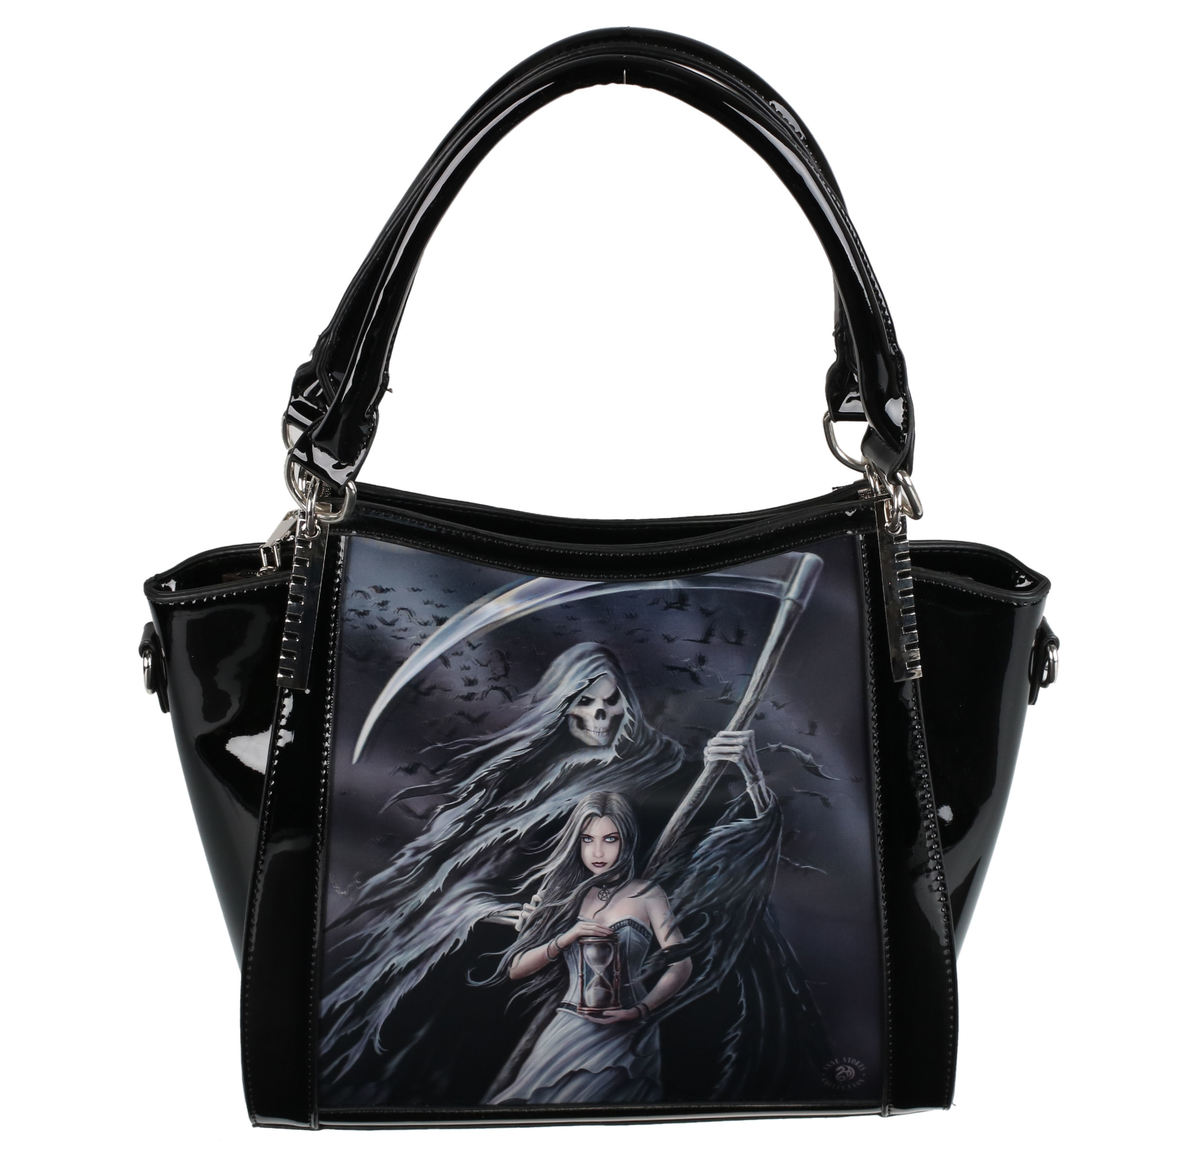 kabelka (taška) ANNE STOKES - Summon The Reaper - Black - AS003AS003